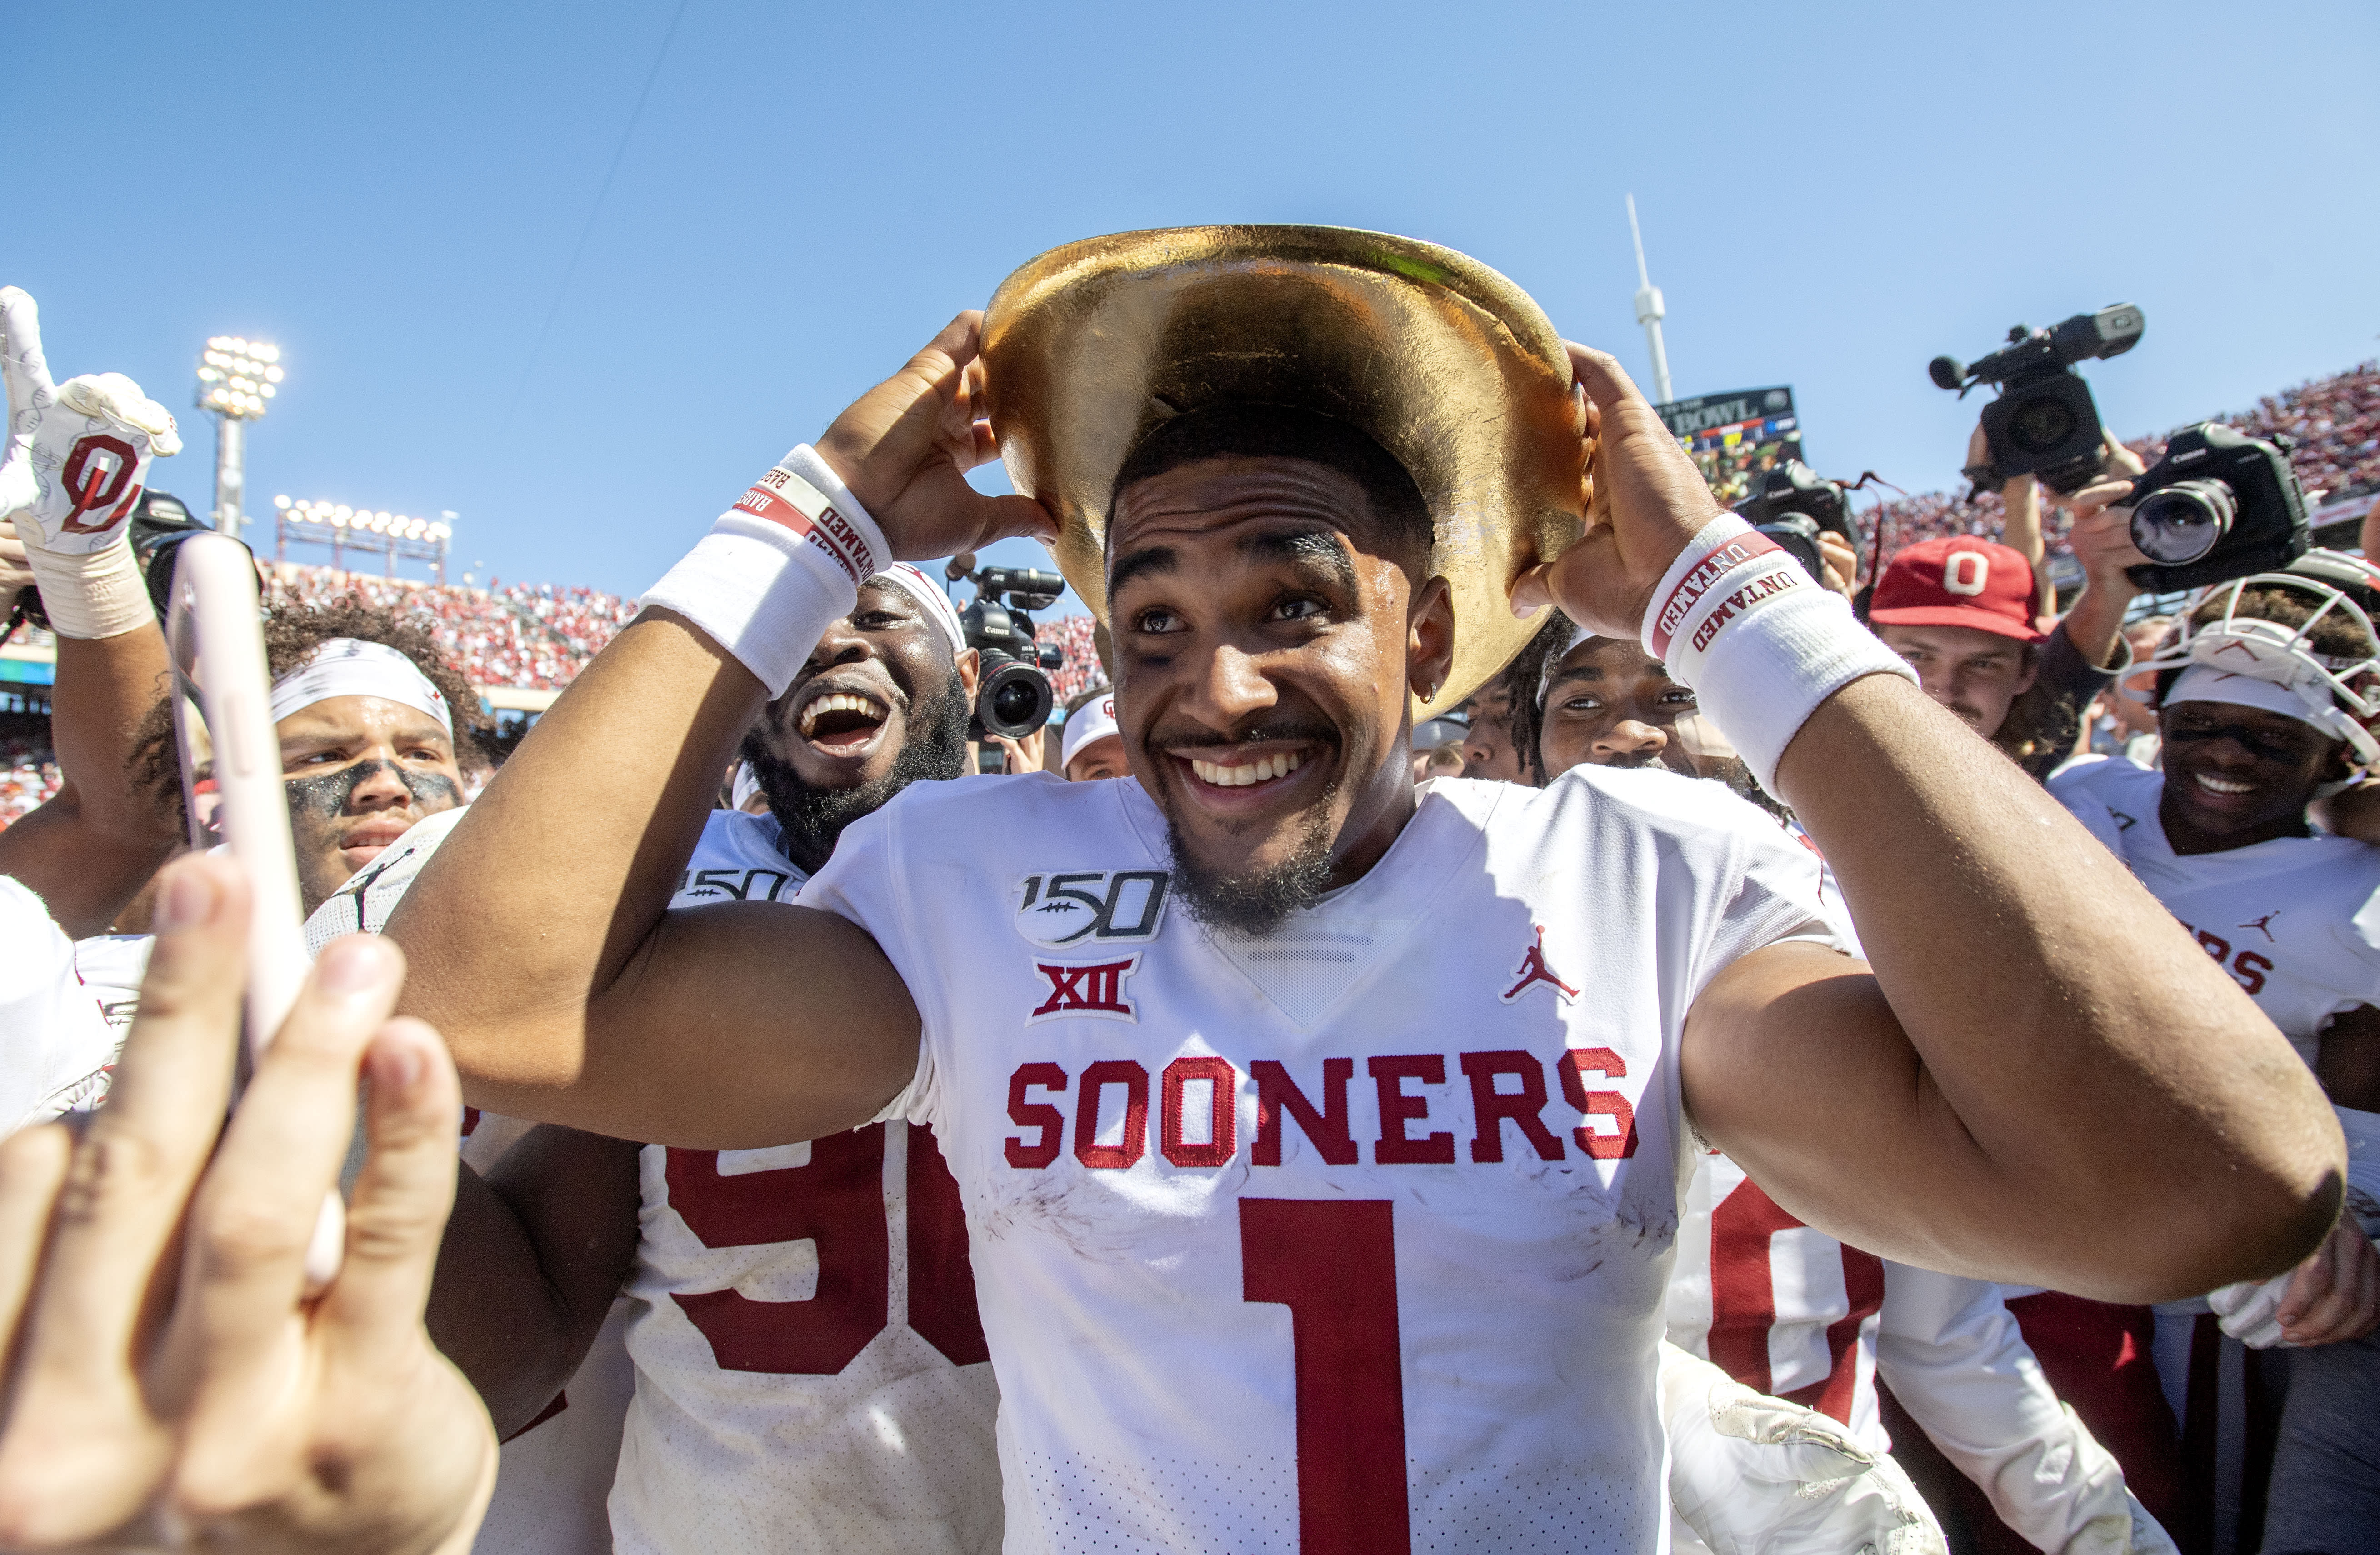 Oklahoma quarterback Jalen Hurts (1) puts on the Golden Hat after beating Texas 34-27 in an NCAA college football game at the Cotton Bowl, Saturday, Oct. 12, 2019, in Dallas. (AP Photo/Jeffrey McWhorter)